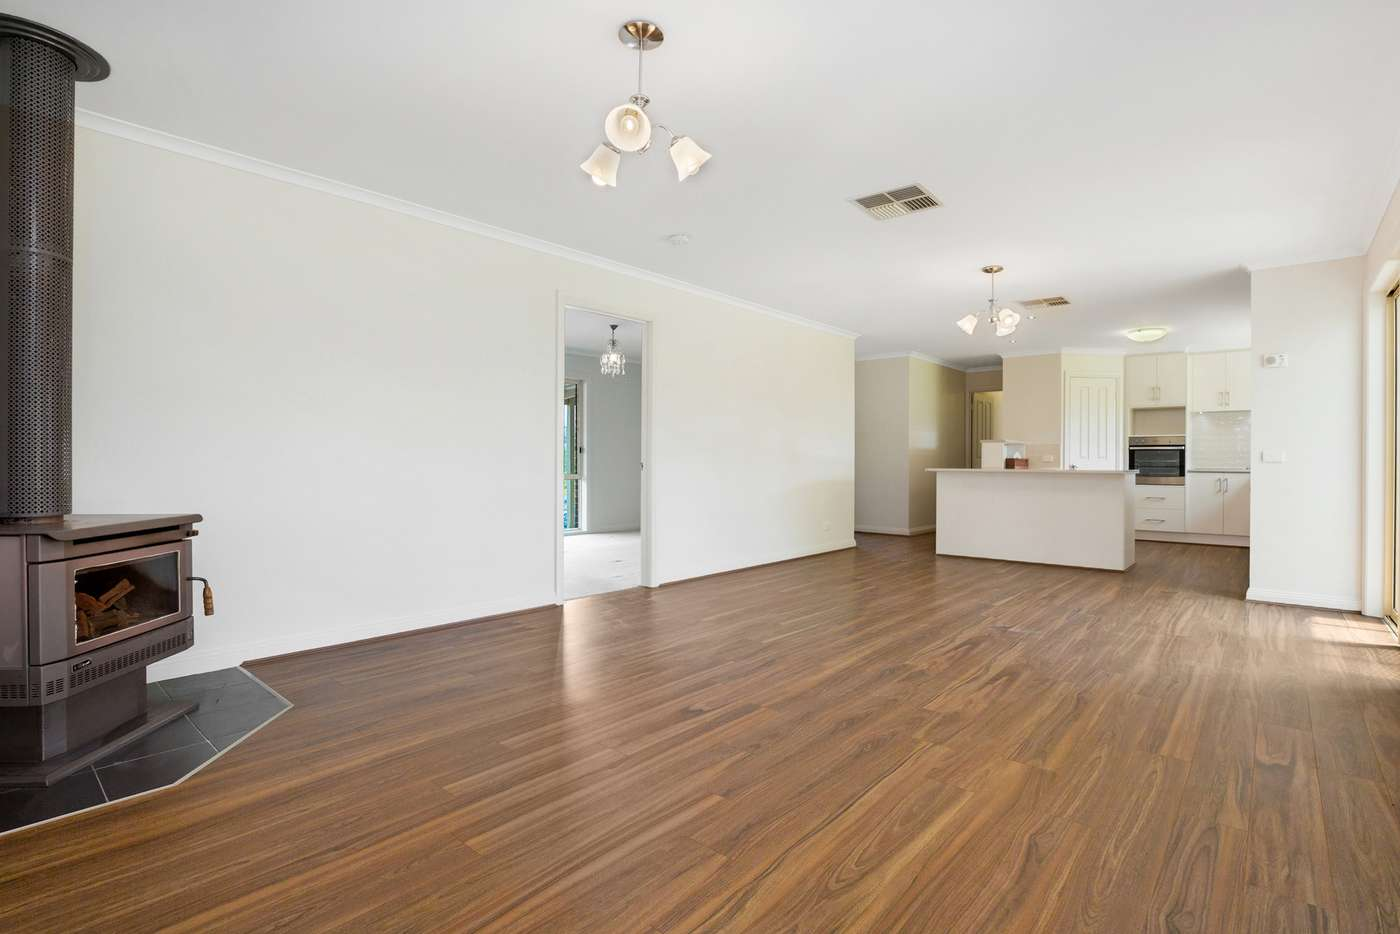 Seventh view of Homely house listing, 142 Nethercraig Road, Lockwood South VIC 3551